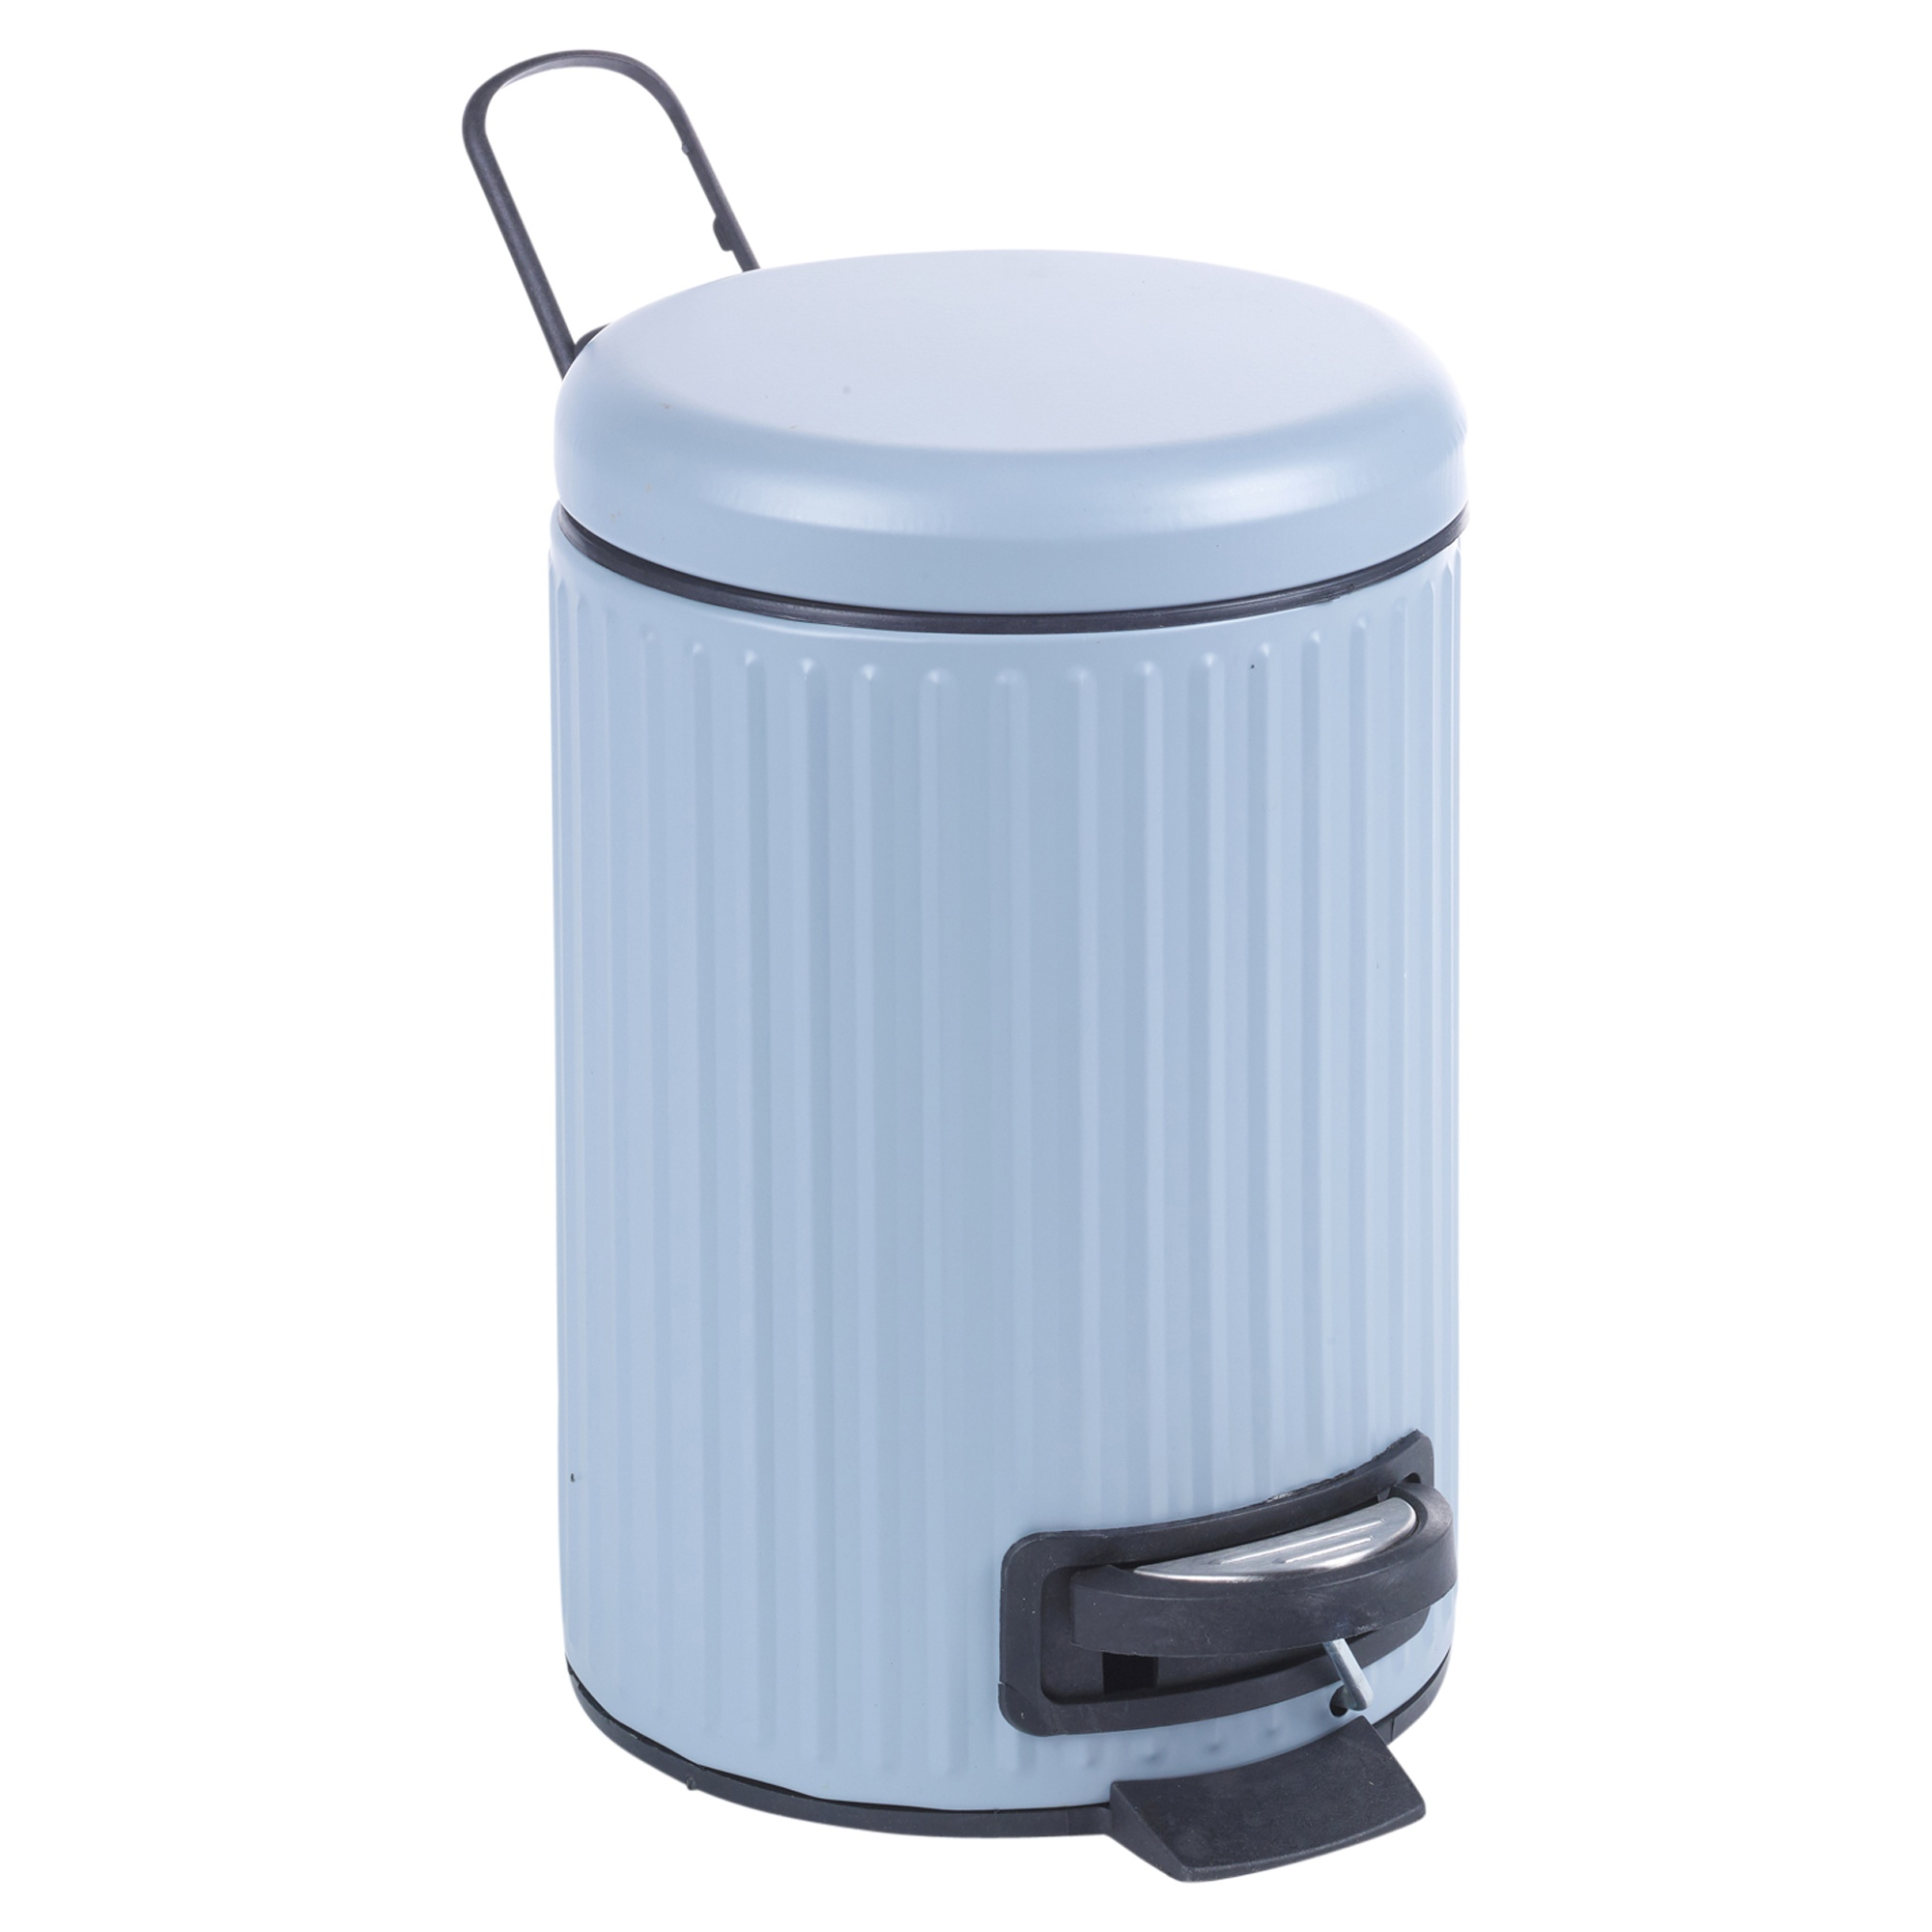 Matching 3 Litre Pedal Bin & Toilet Brush Pedal Operated Waste ...